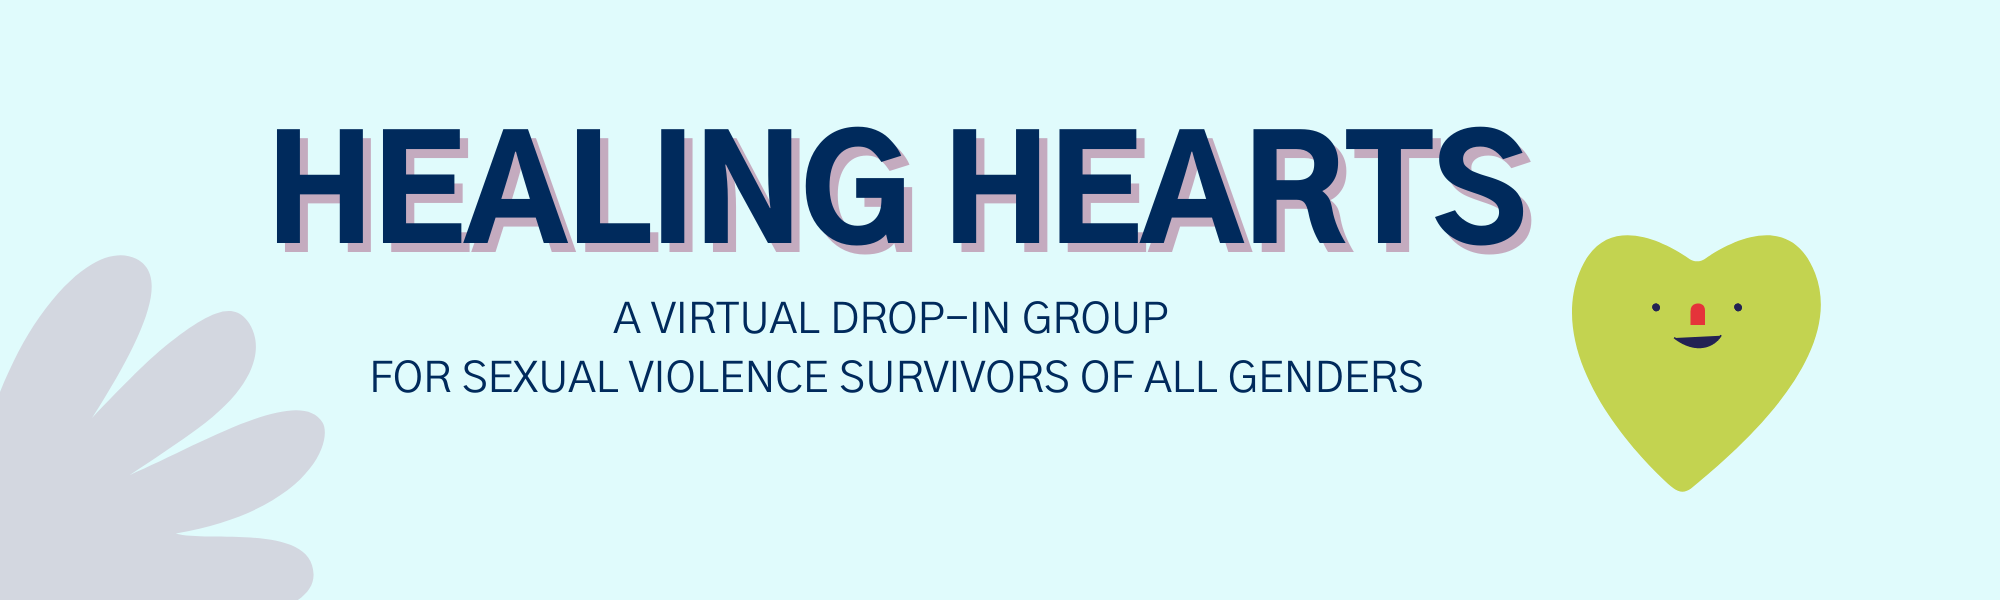 """Text reads: """"Healing Hearts: A virtual drop-in group for sexual violence survivors of all genders. Image includes a picture of a green heart with a smiley face."""